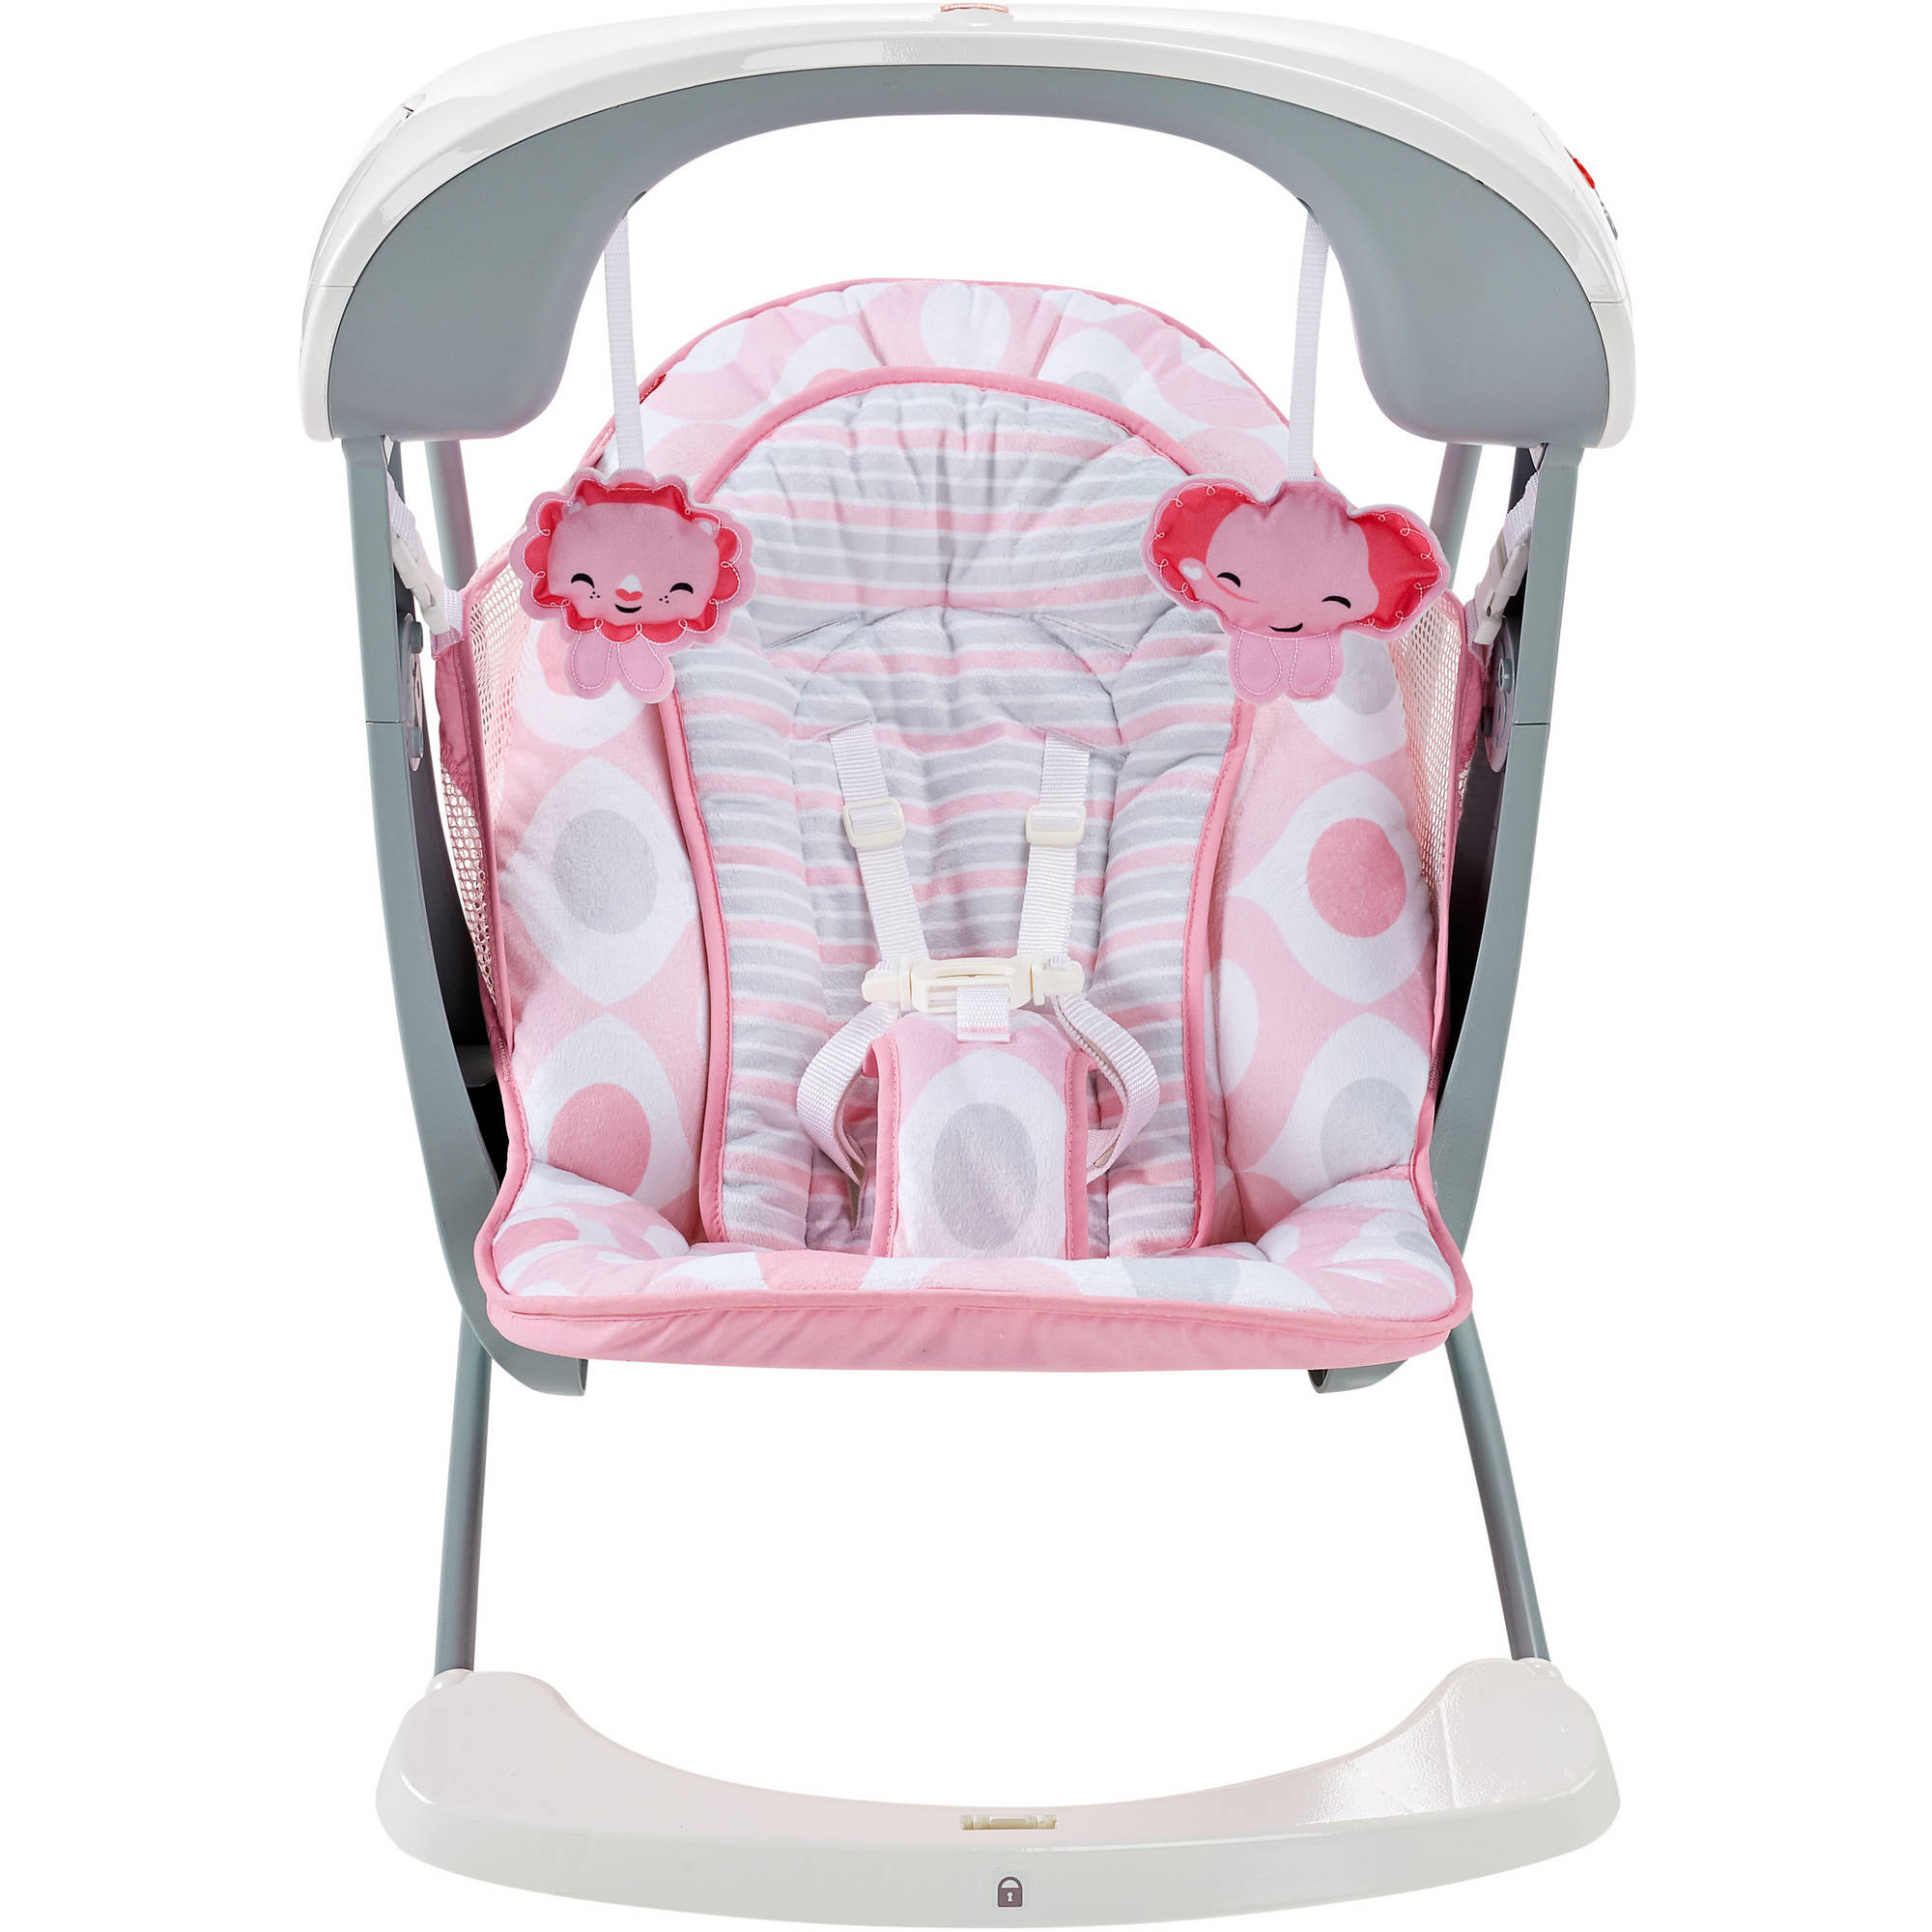 Fisher Price Deluxe Take-Along Swing & Seat - Walmart.com